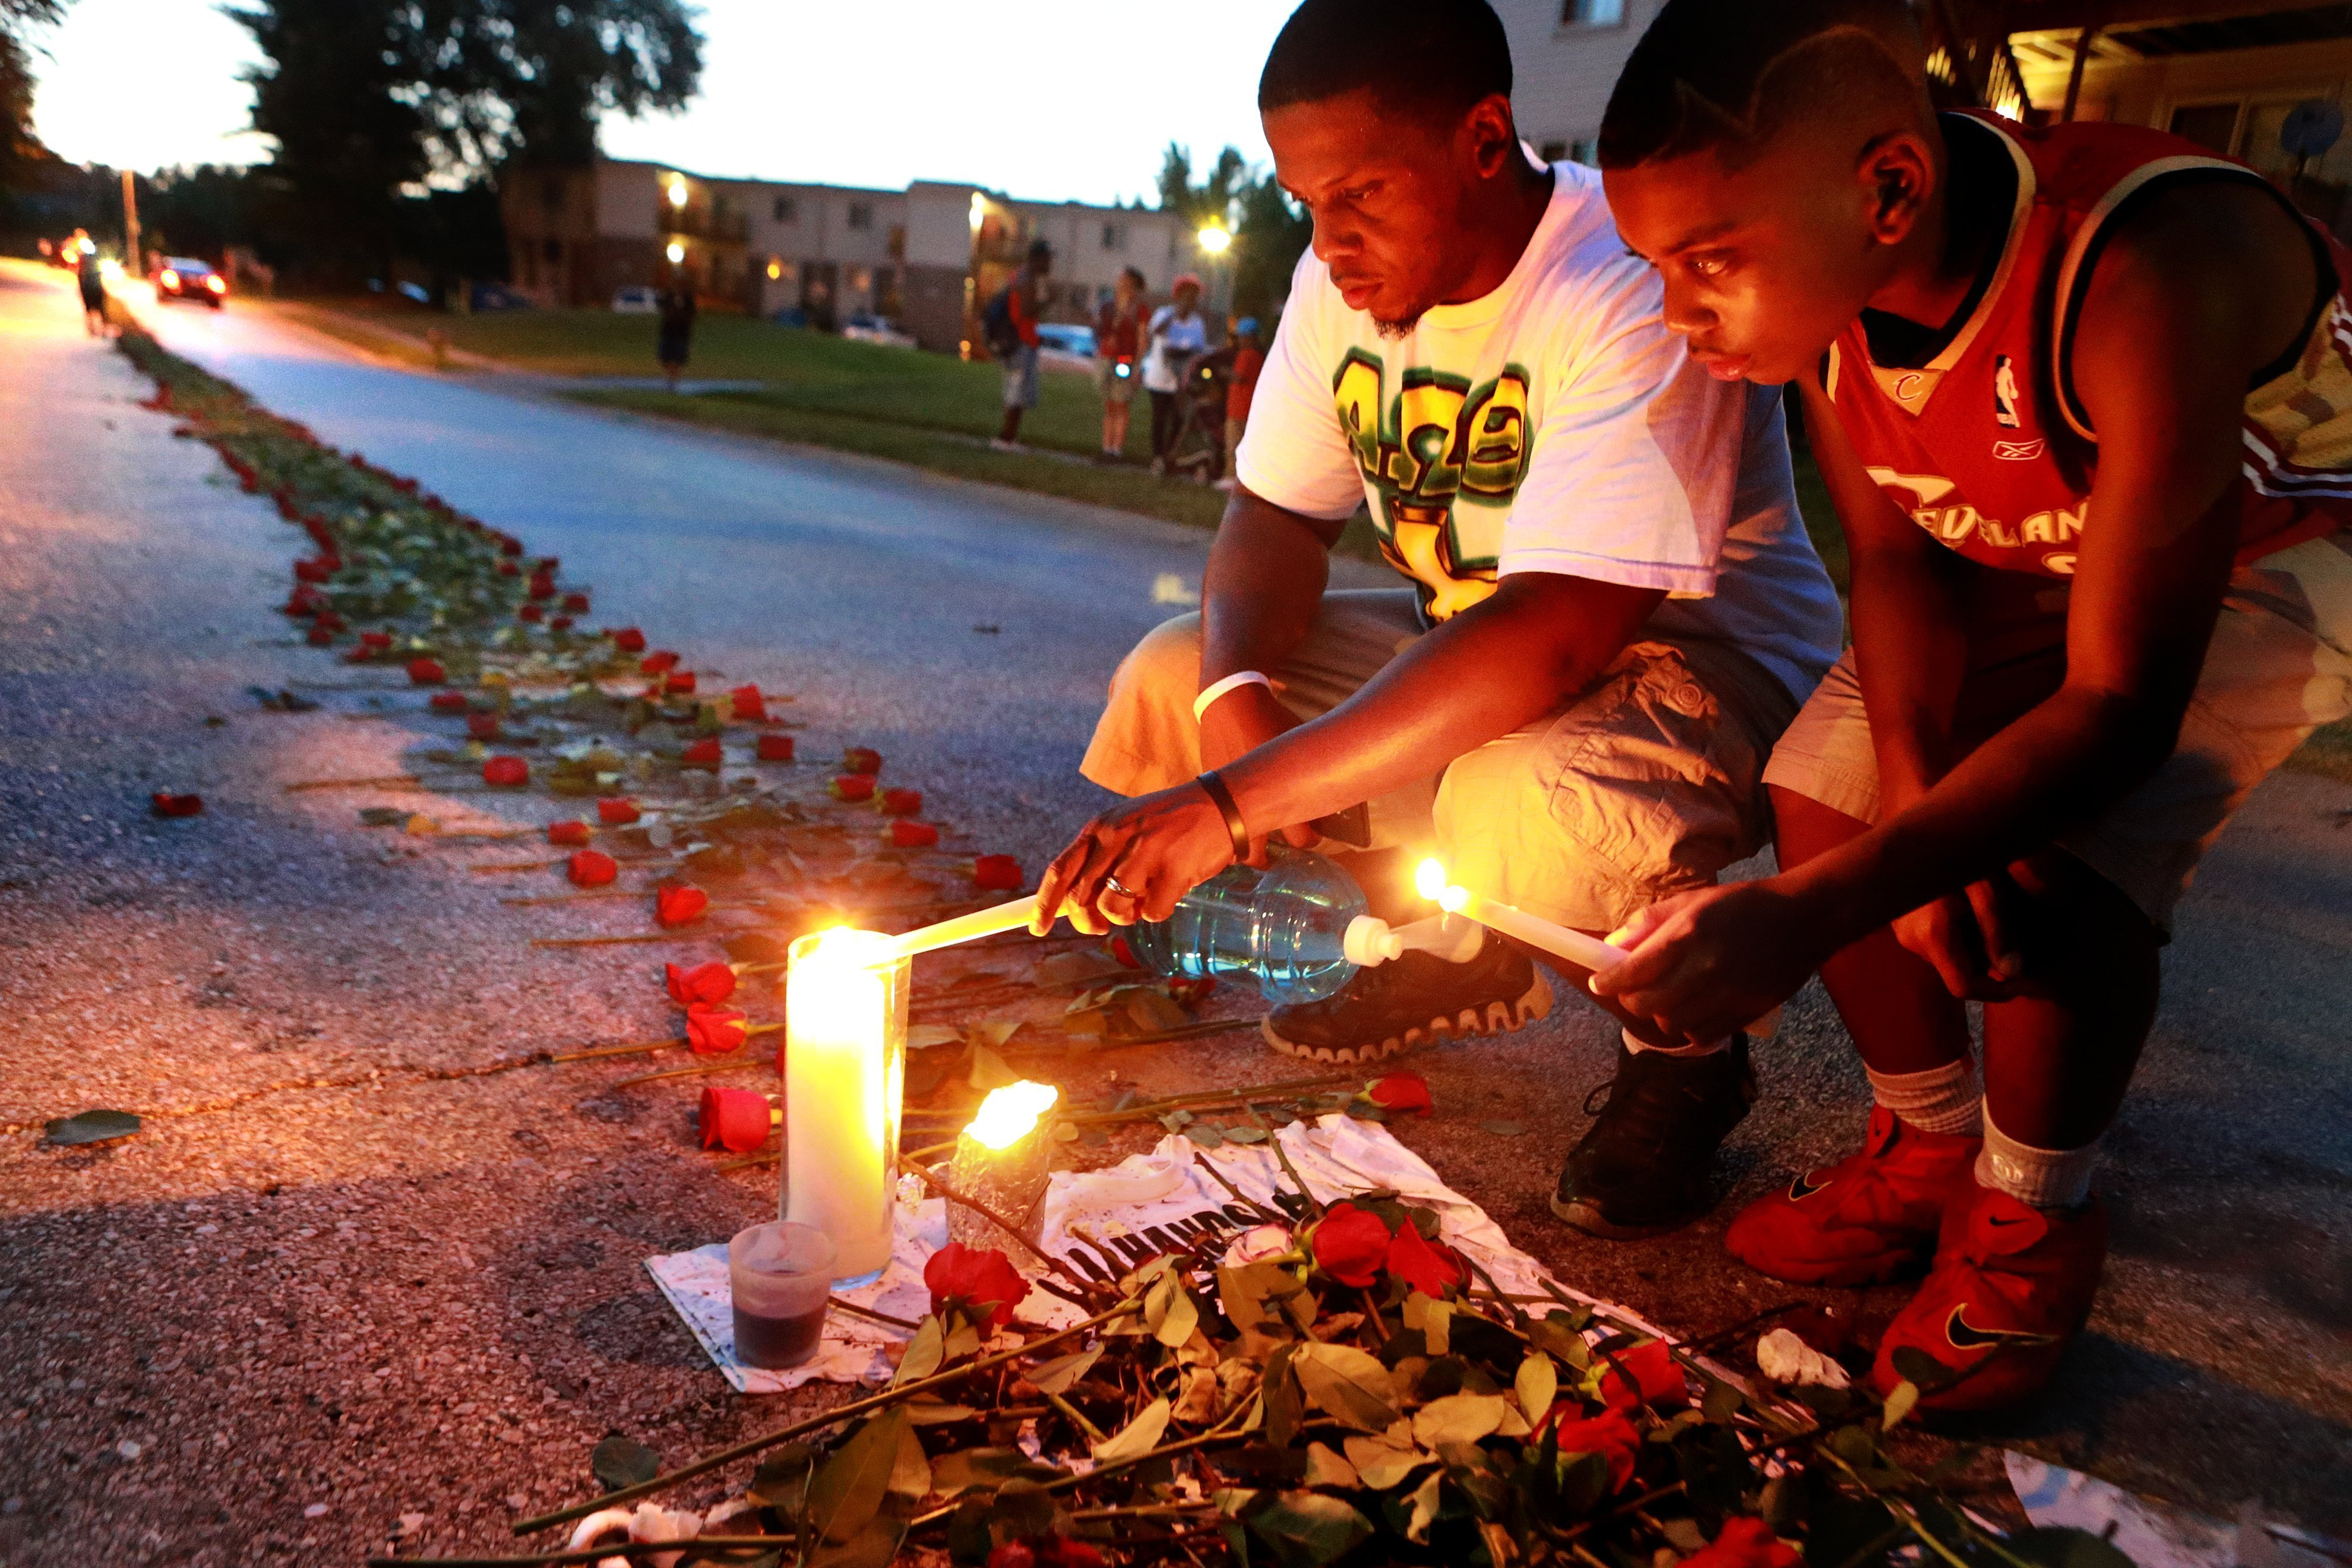 Theo Murphy (left) of Florissant and his brother Jordan Marshall light candles, at a memorial on Canfield Drive where unarmed teen Michael Brown was fatally shot, Aug. 21, 2014 in Ferguson, Mo.